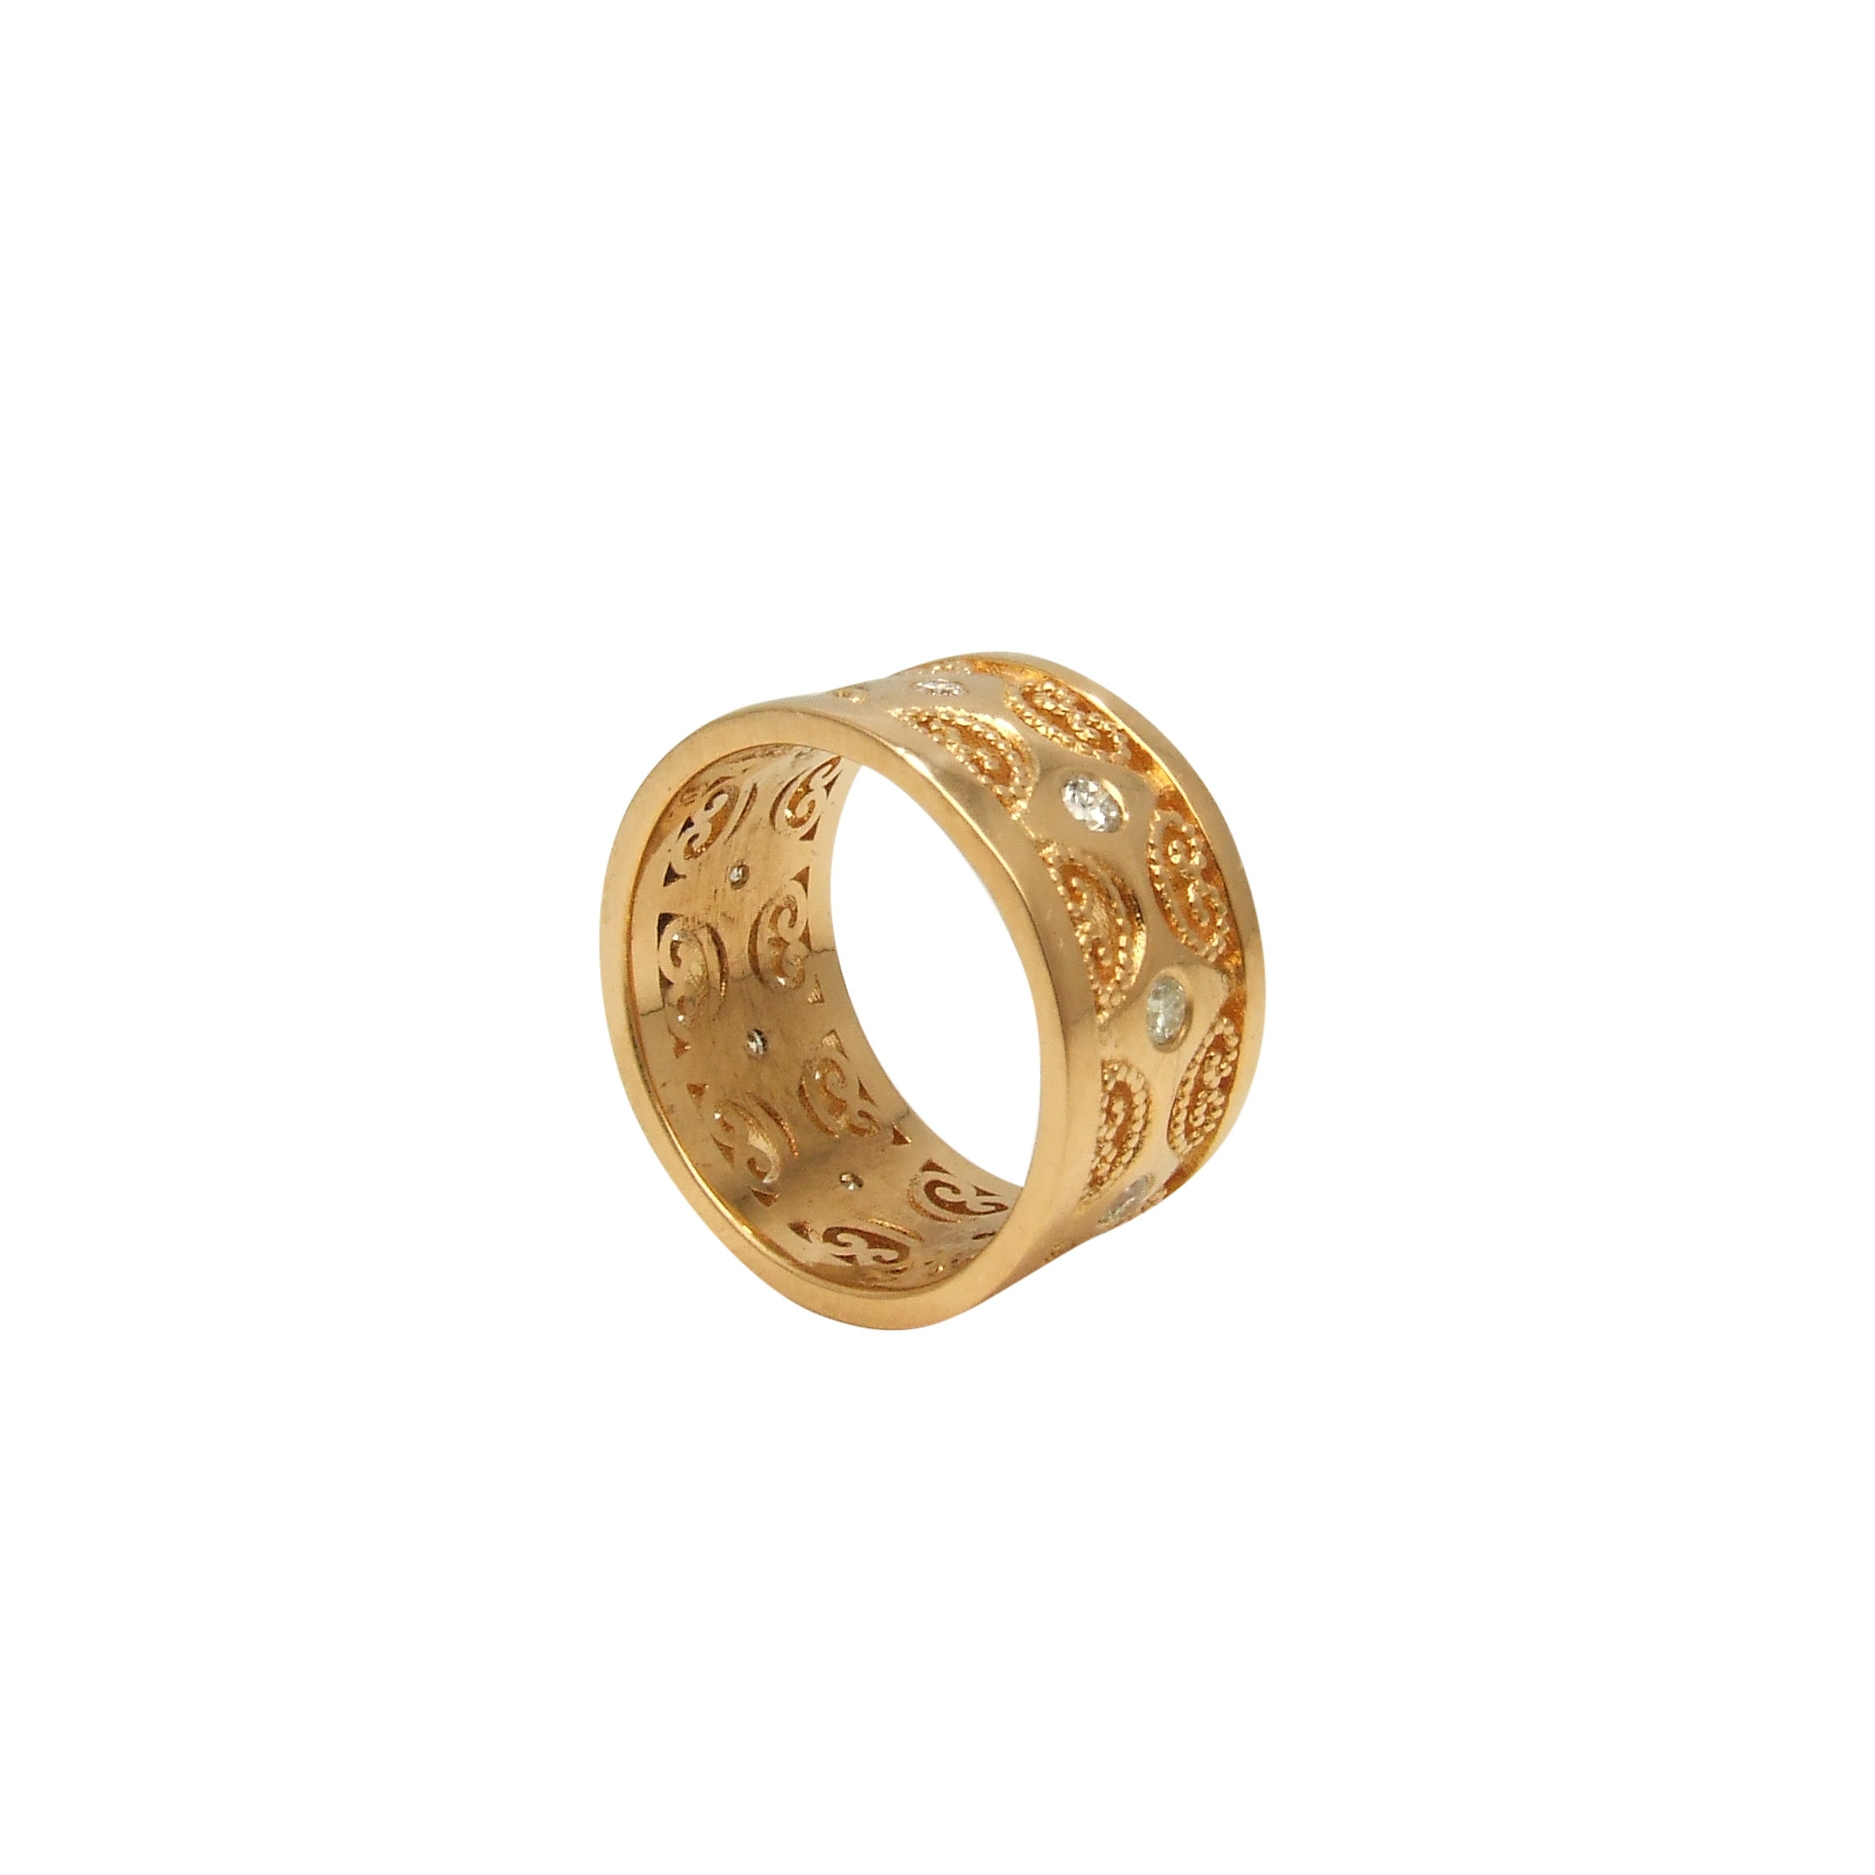 18k yellow gold (22k plated) ring with diamonds